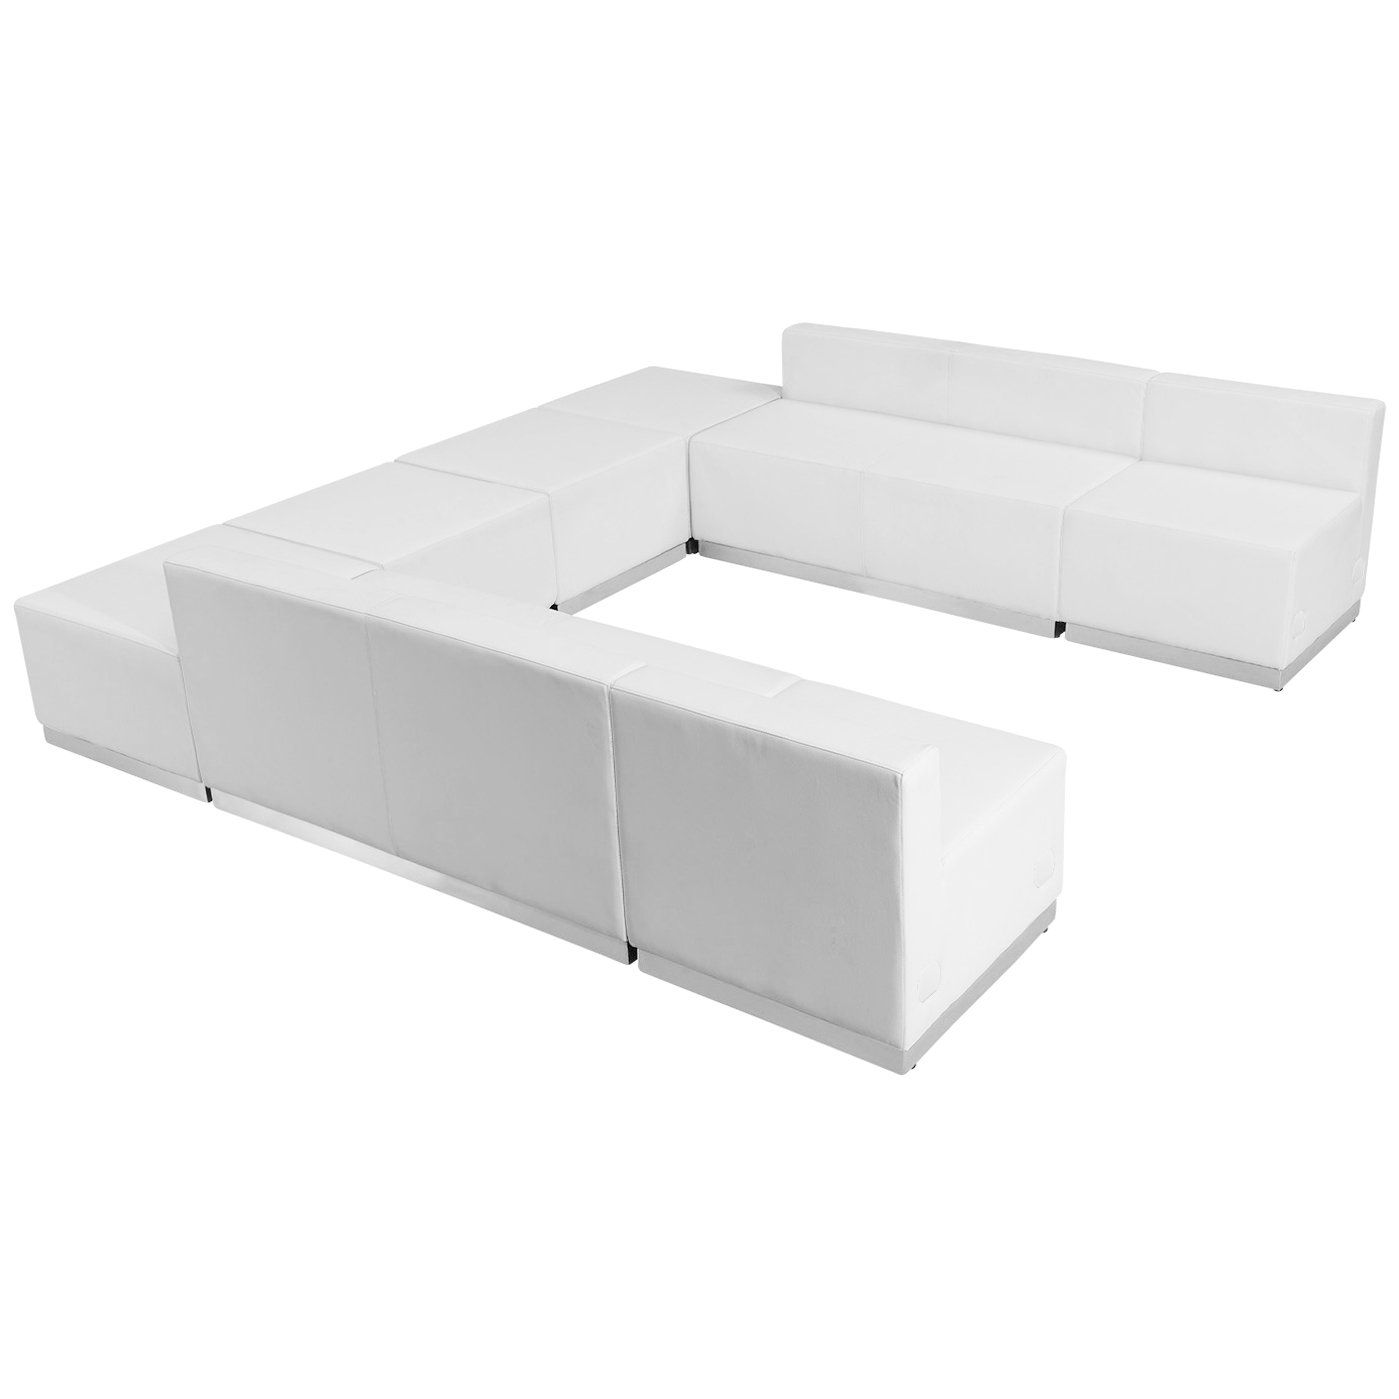 Flash Furniture Hercules Alon Series Melrose White Leather Reception Configuration 8 Pieces In 2020 White Living Room Set Flash Furniture Furniture